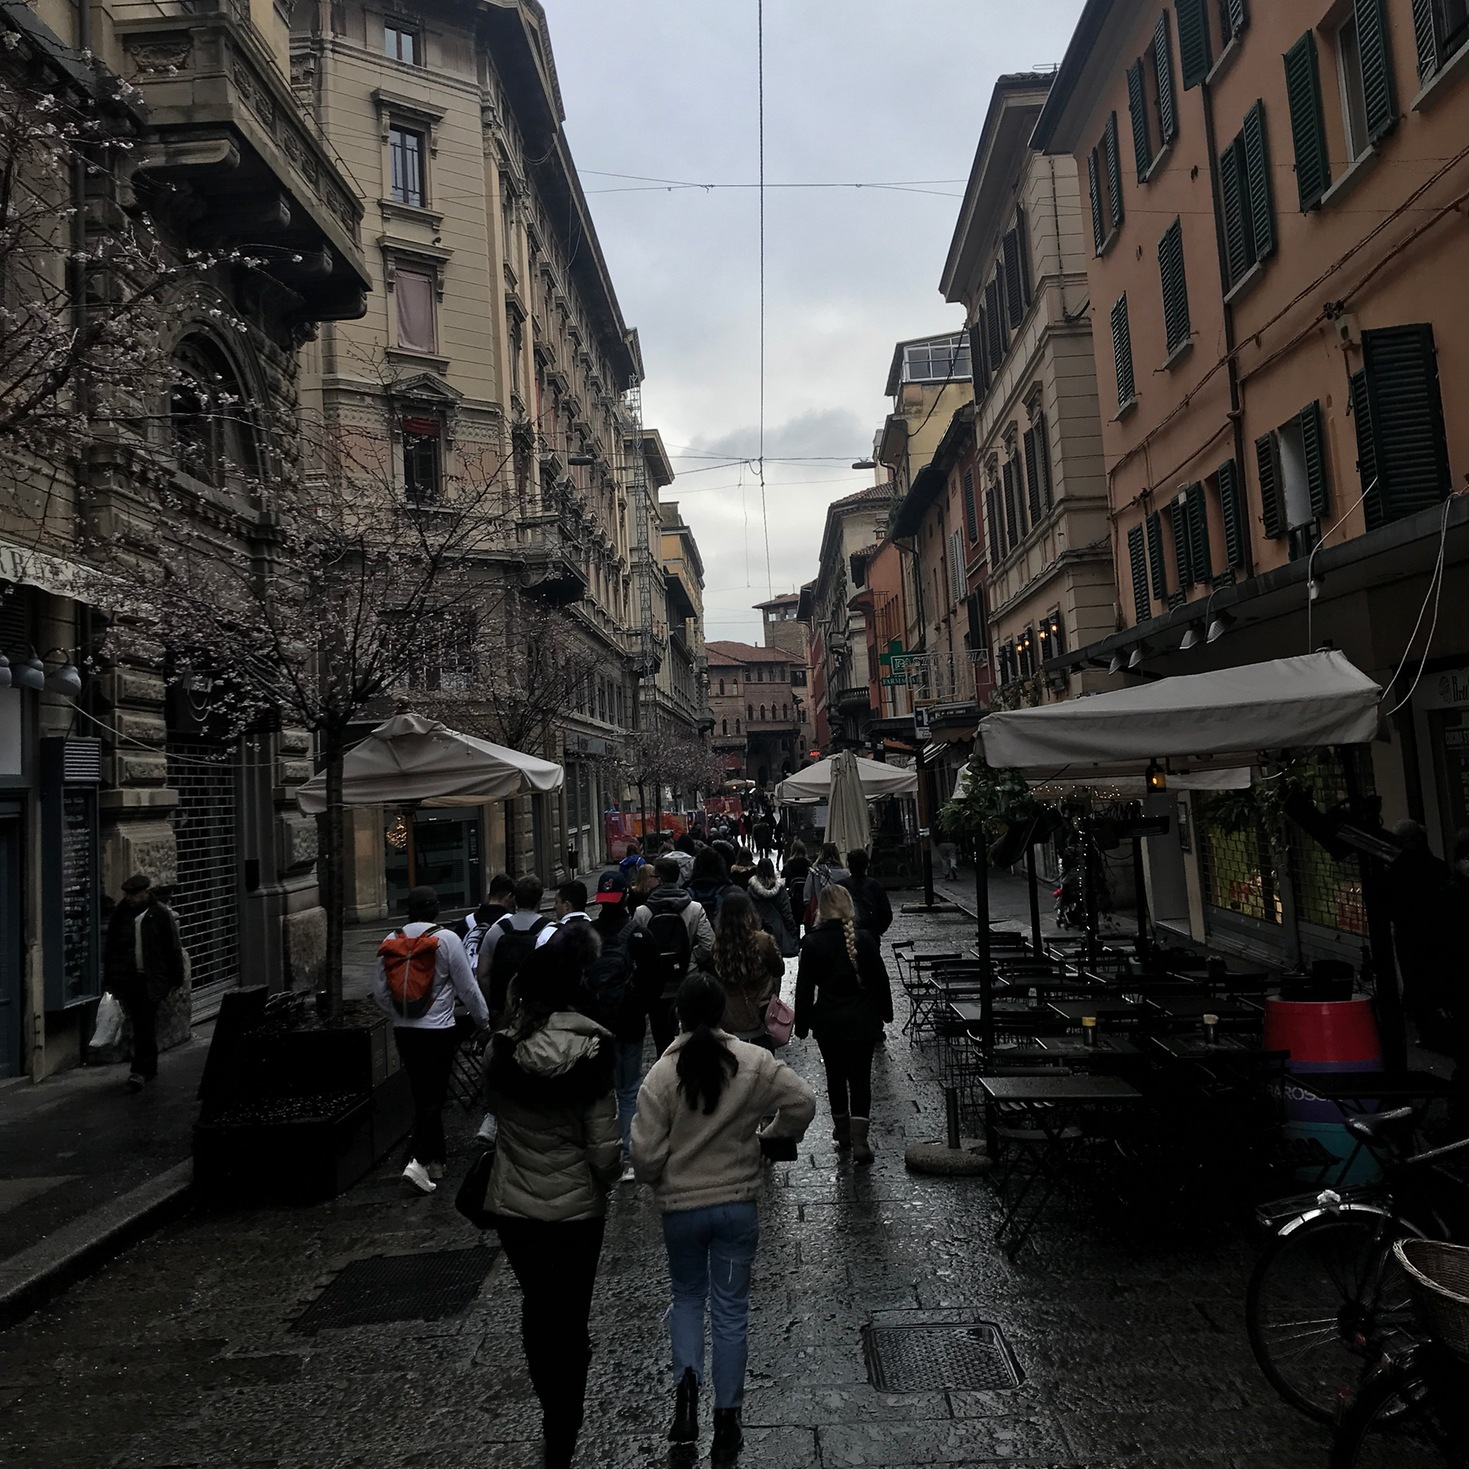 Street-level, Bologna, Italy